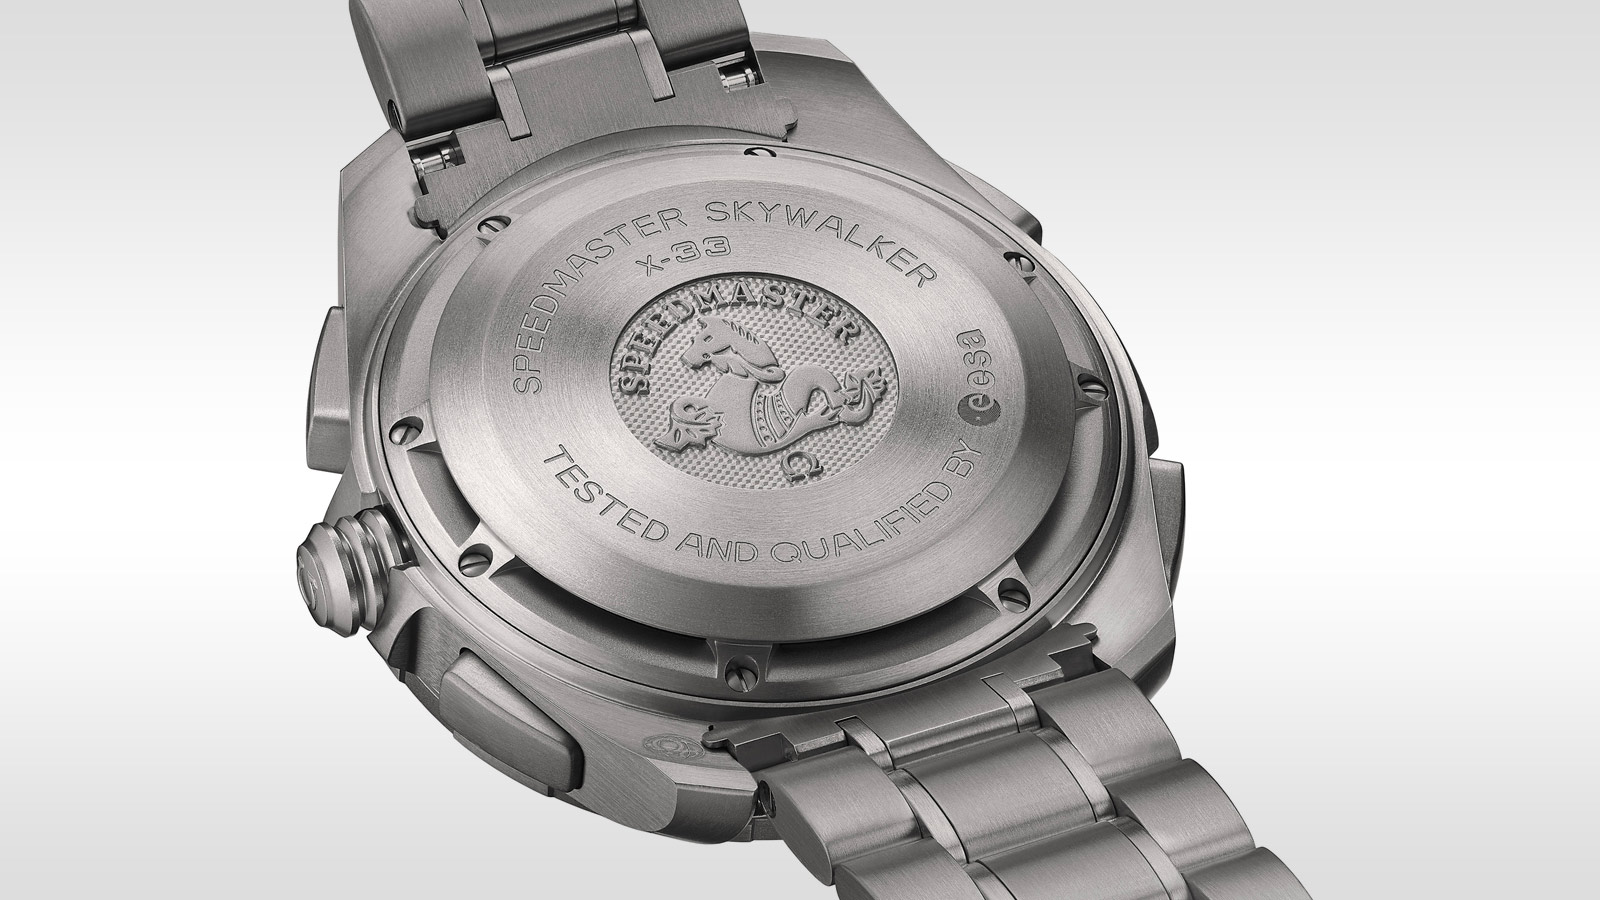 Speedmaster SKYWALKER X‑33 Skywalker X‑33 Chronograph 45 mm - 318.90.45.79.01.001 - Просмотреть 3